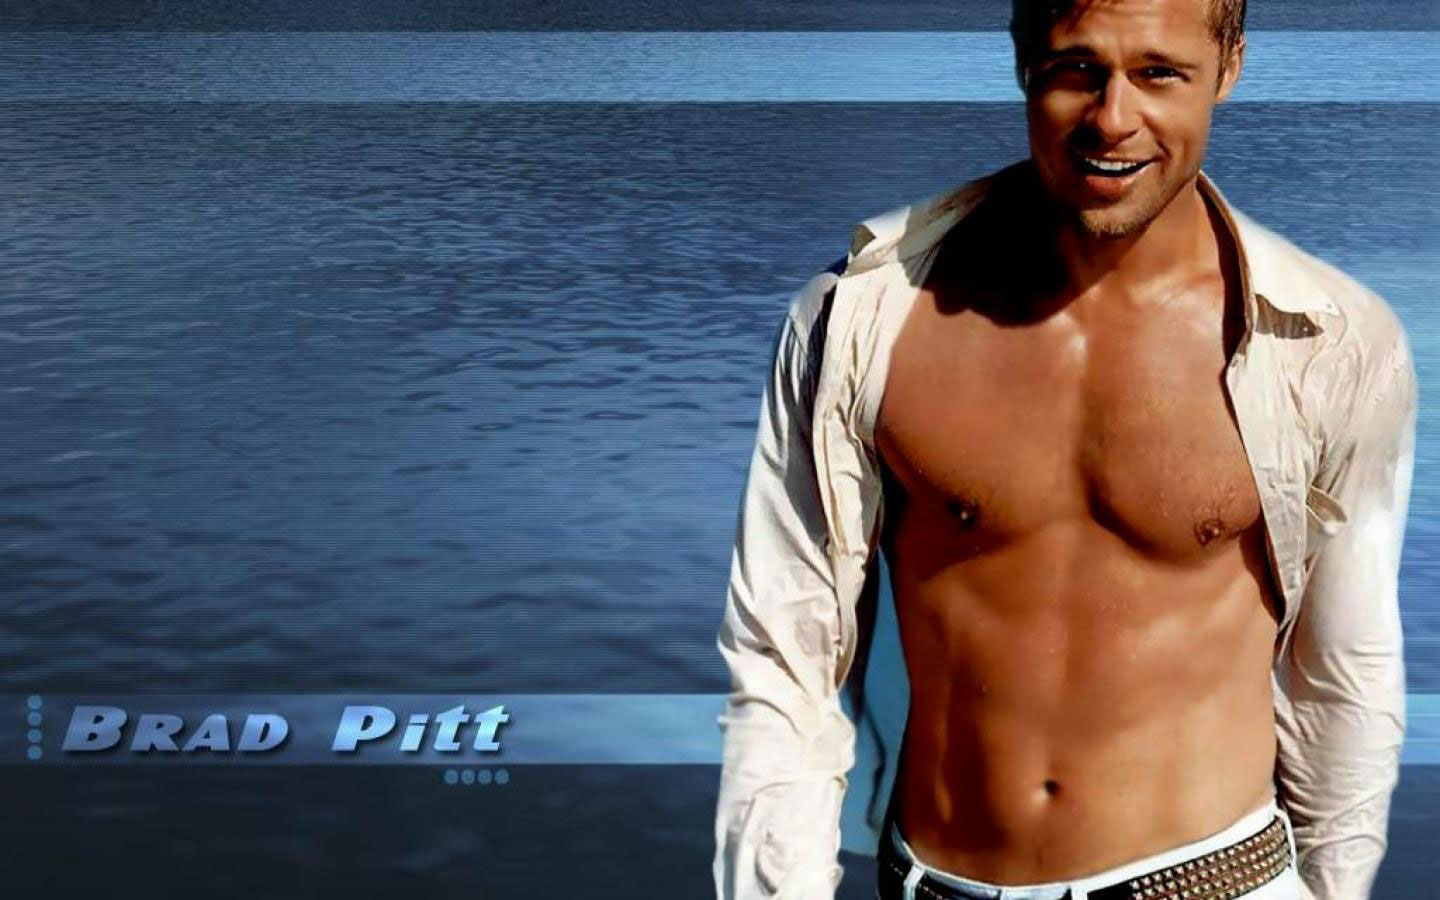 50 Brad Pitt HD Wallpaper